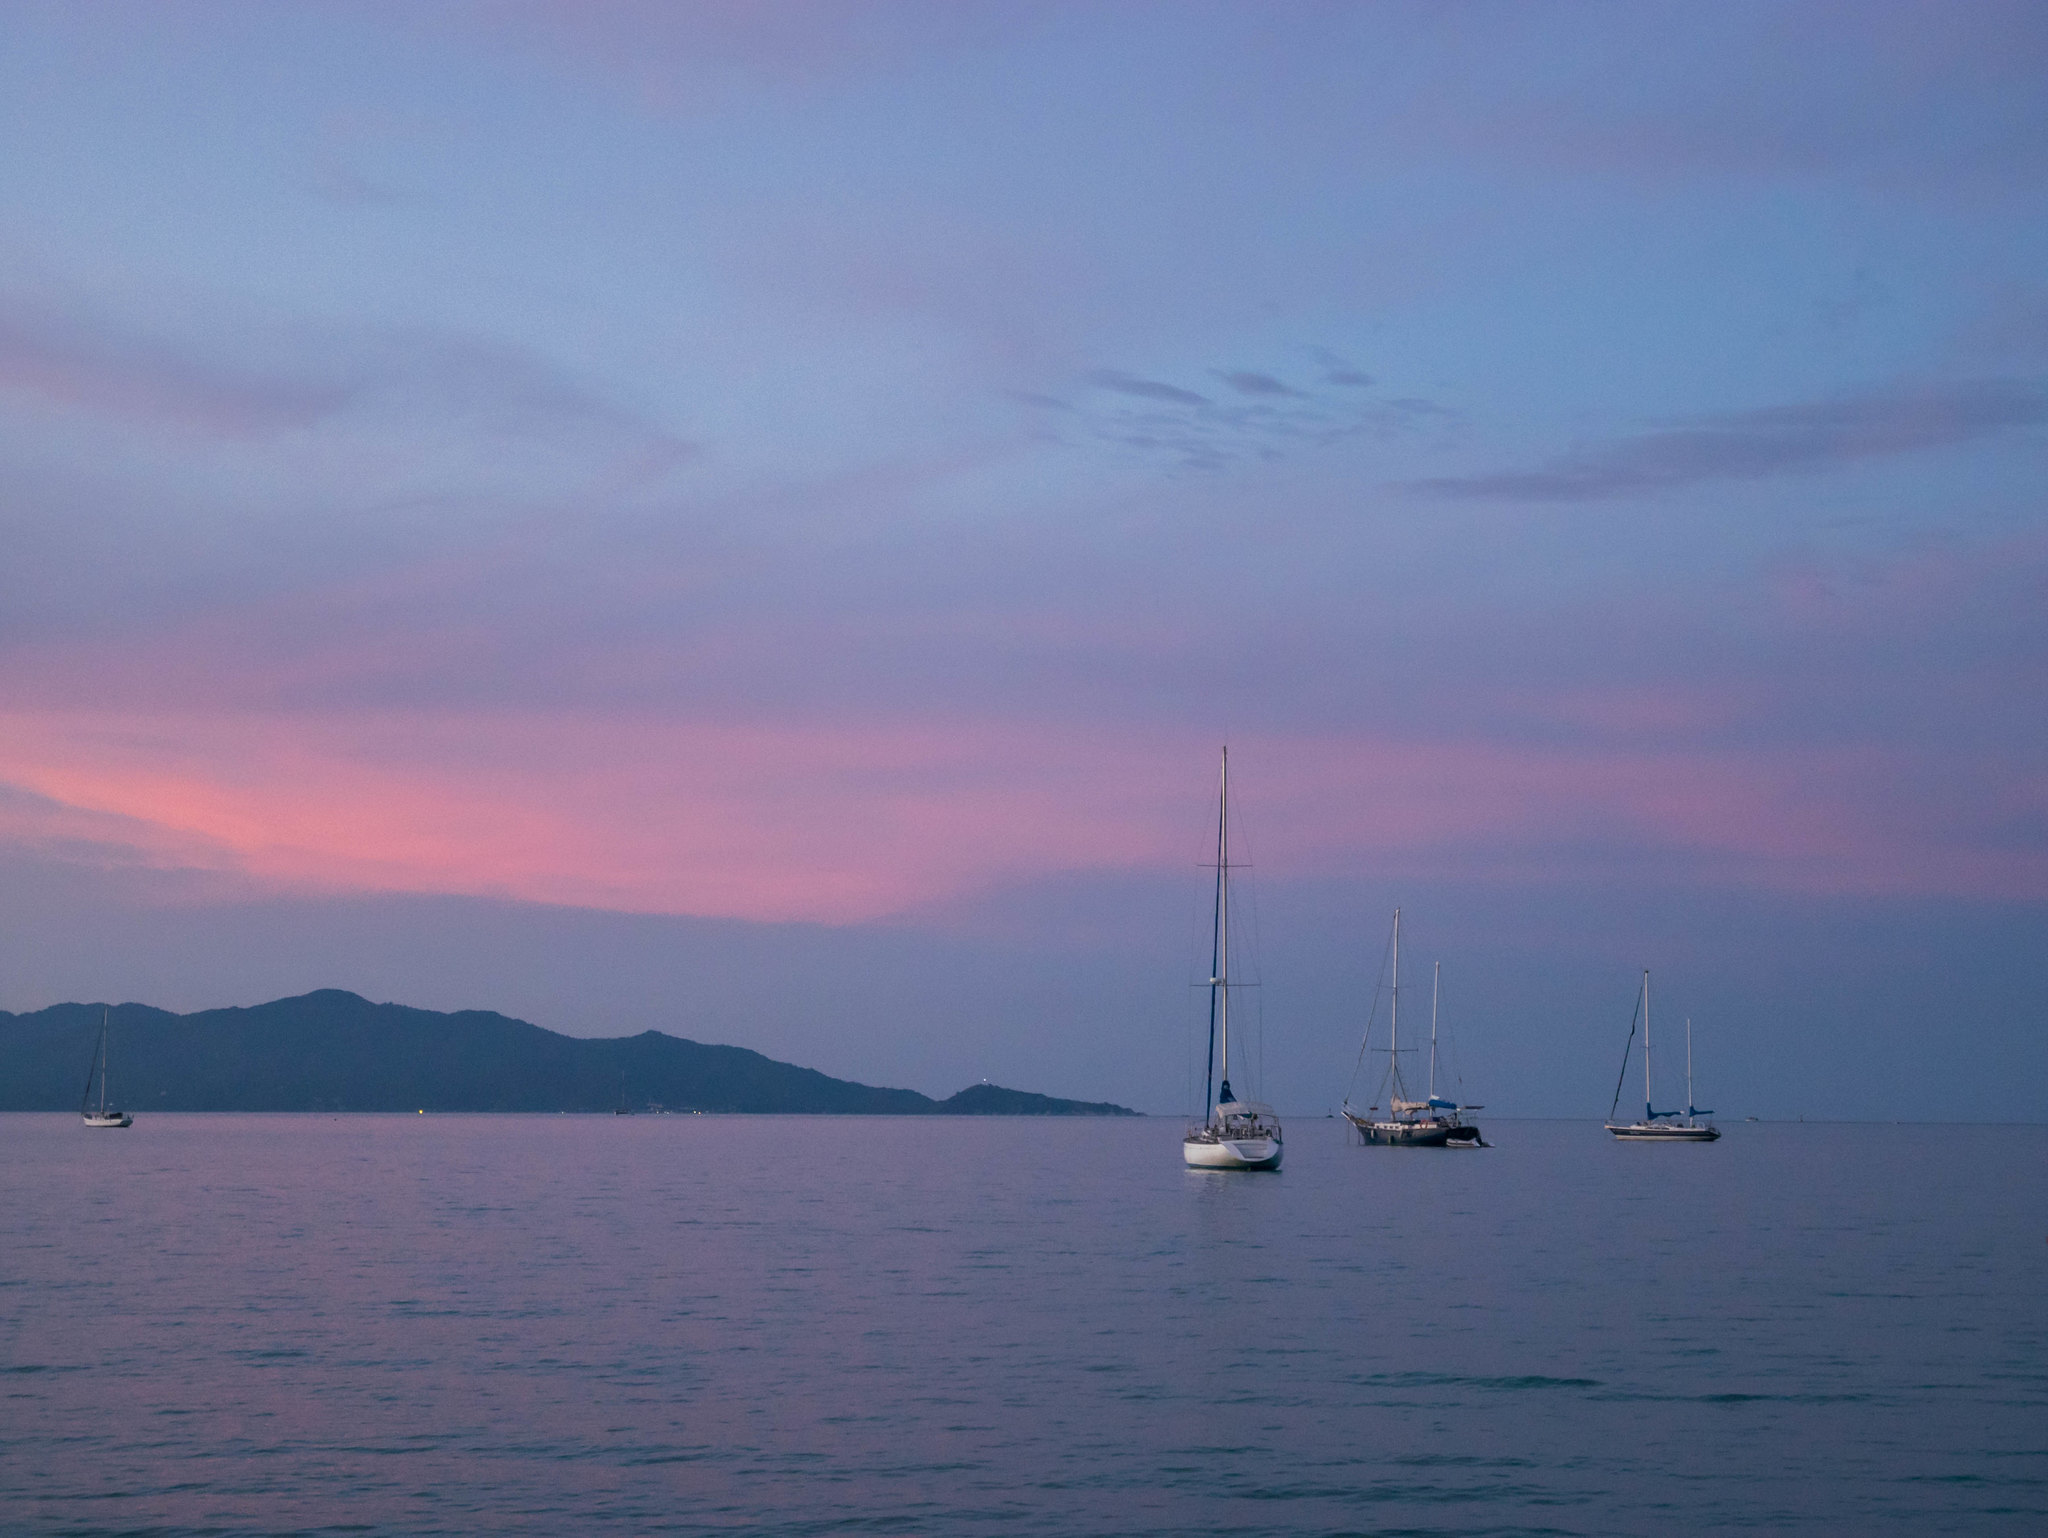 Pink sky behind a boat